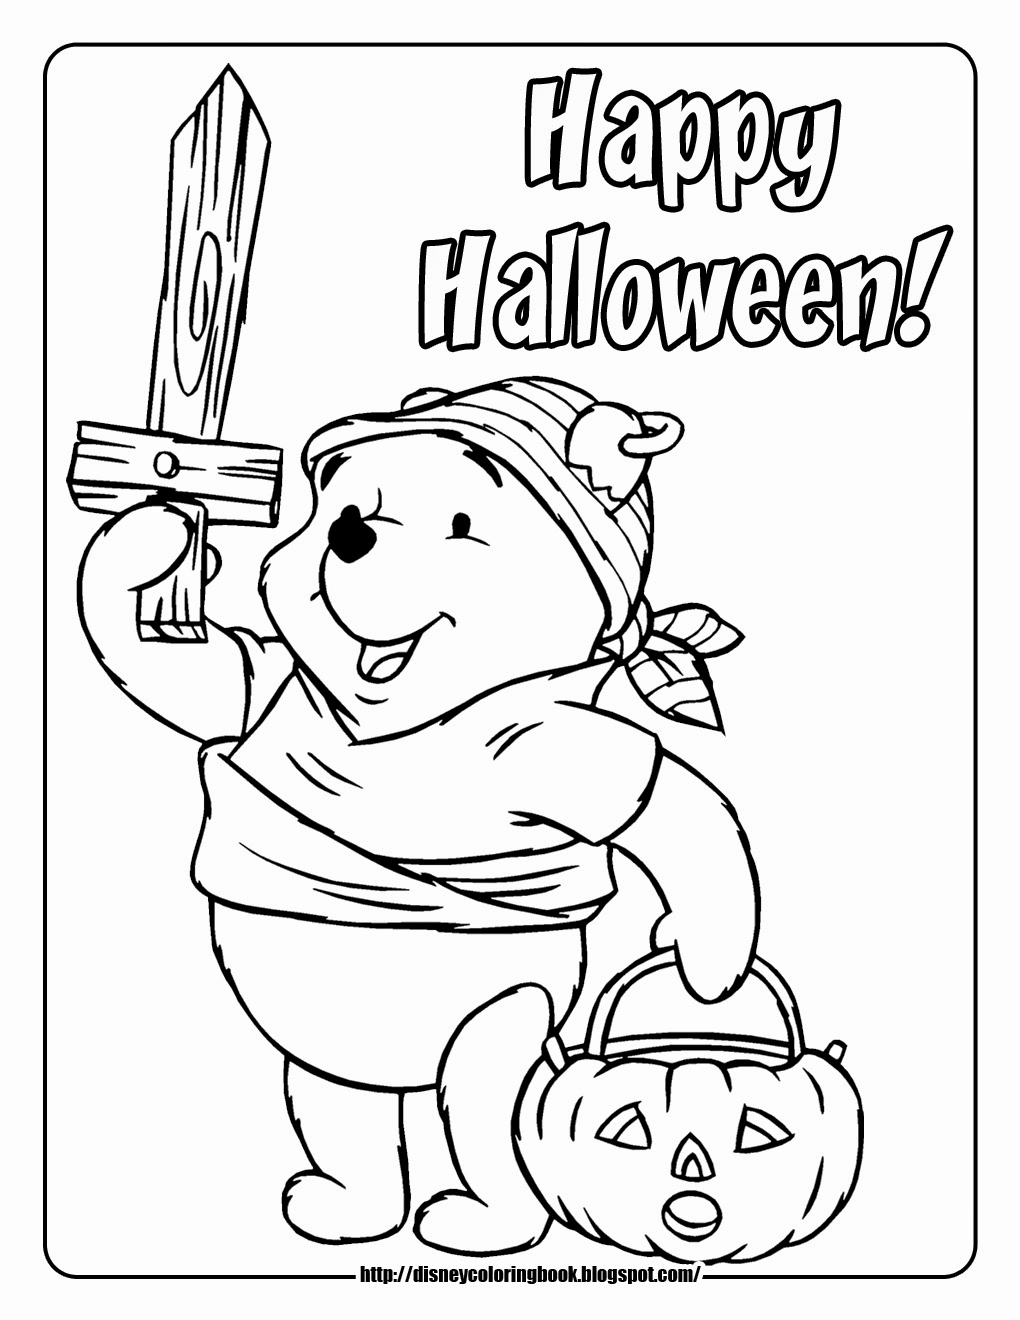 Sponge Bob Halloween Coloring Pages  to Print 13m - To print for your project